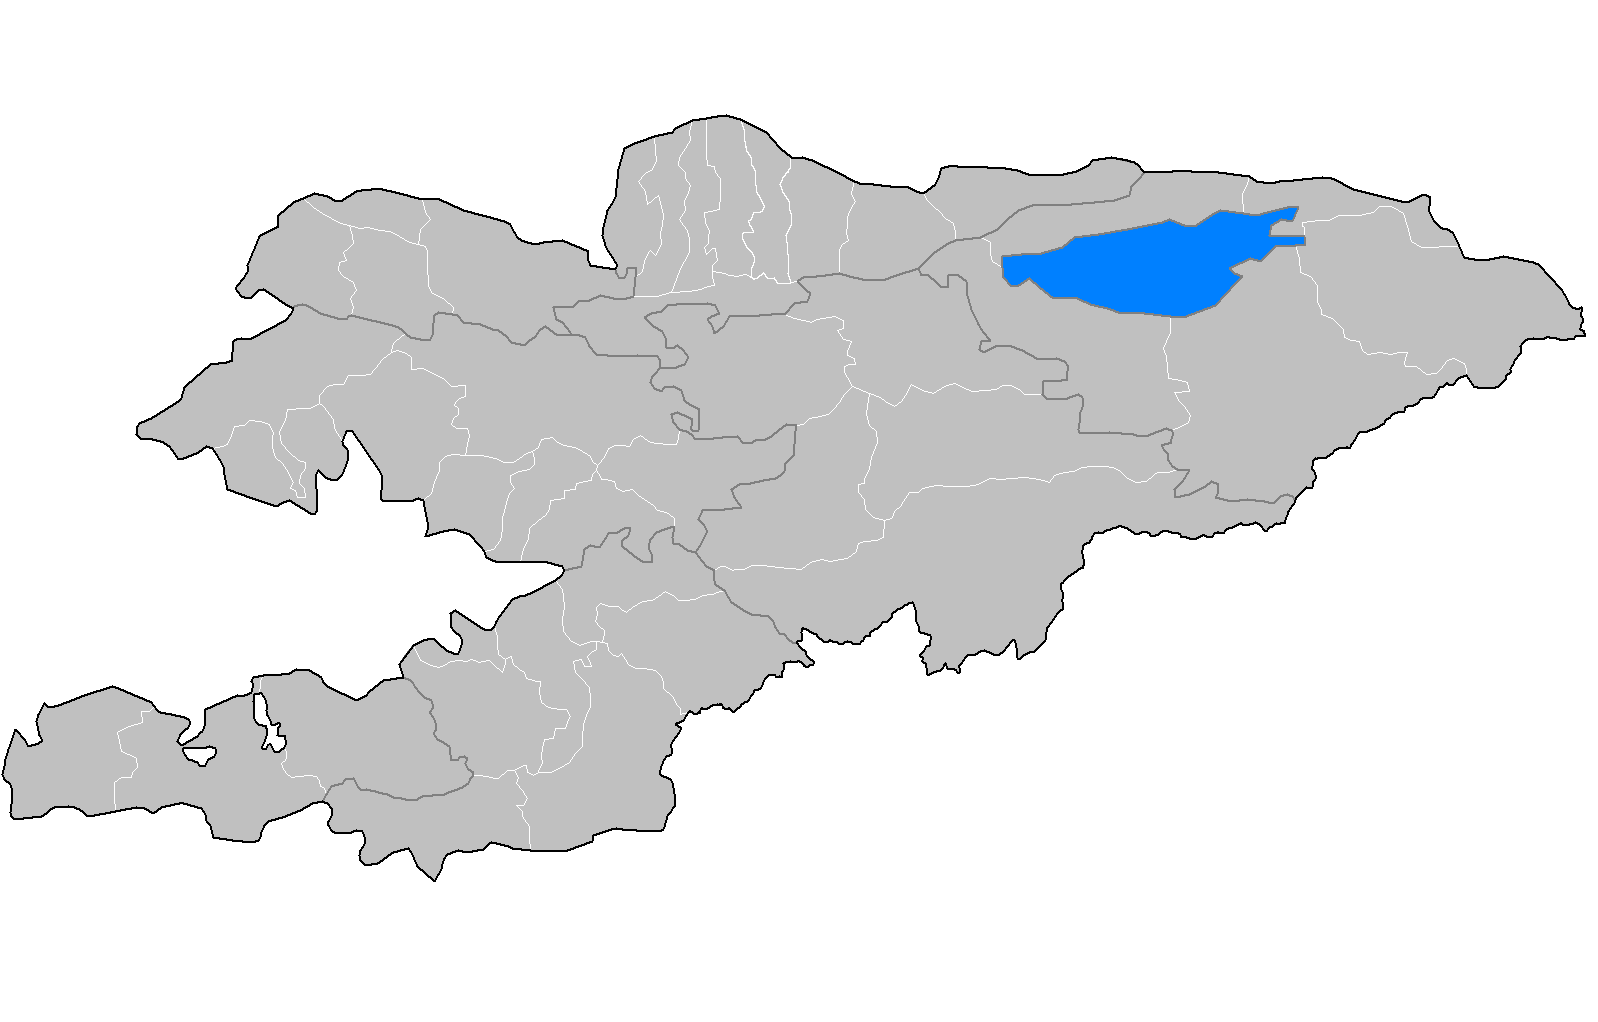 FileKyrgyzstan raionspng Wikimedia Commons